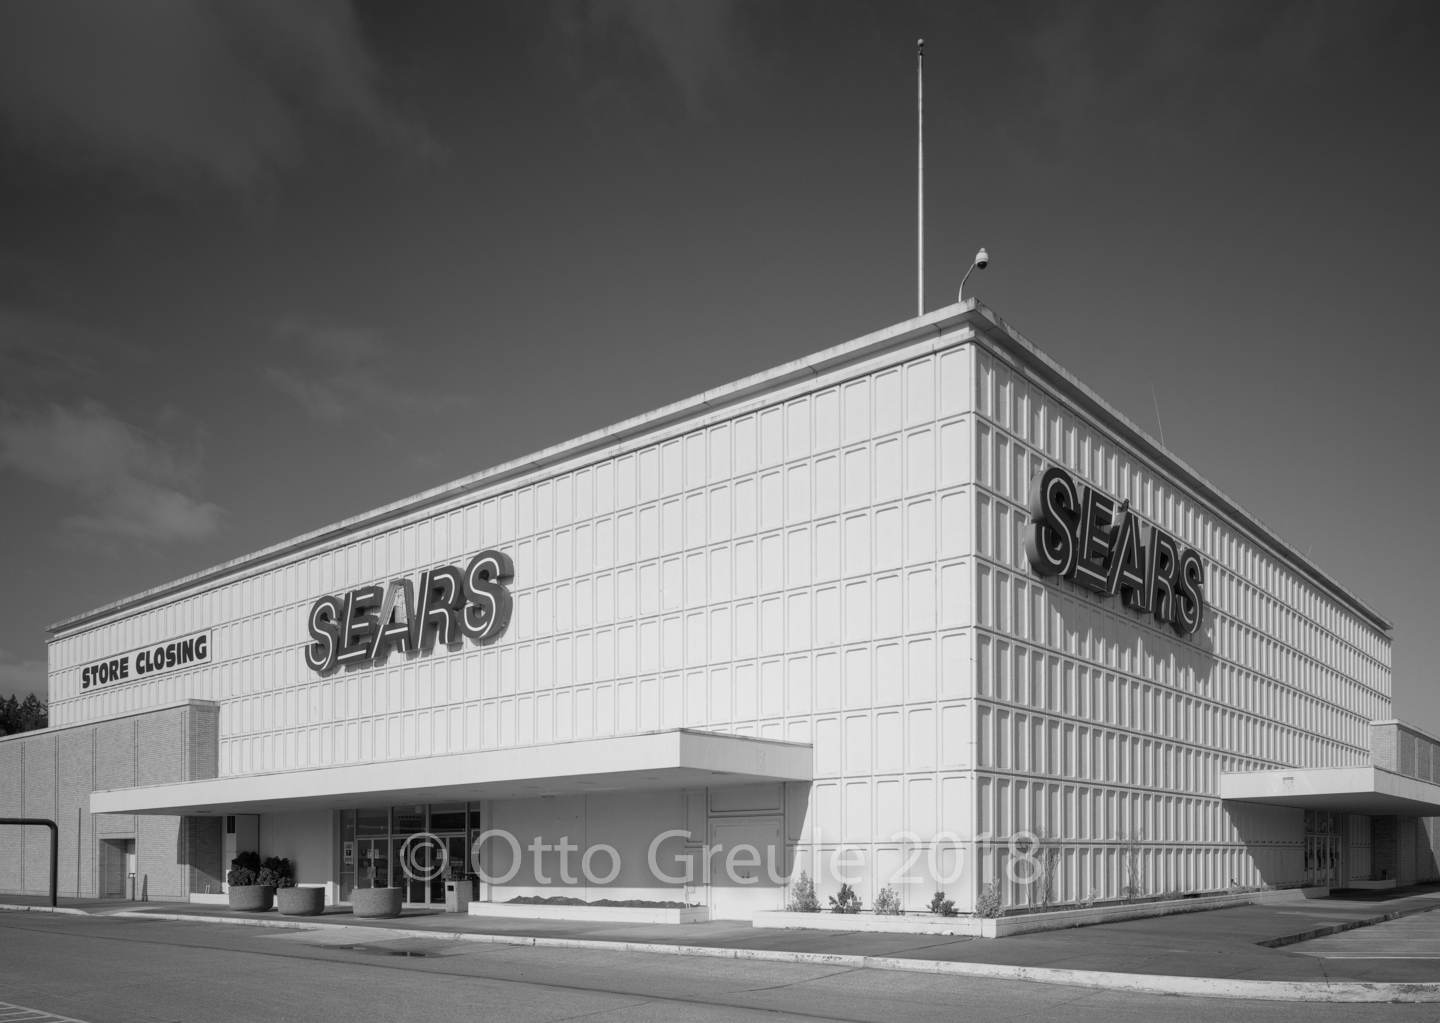 The east and north elevations of the Sears department store in Shoreline WA., April 2, 2018. Photographed on 5x7 inch panchromatic film.